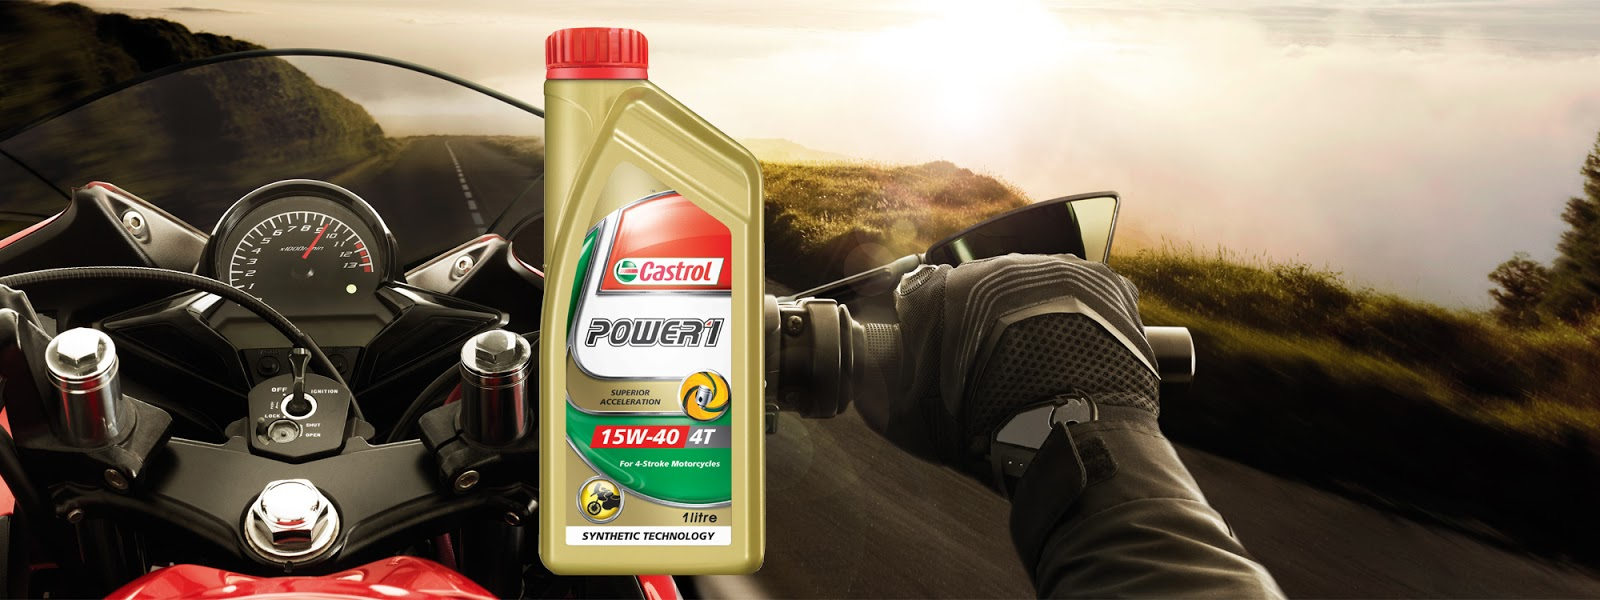 83 Motorcycle Motor Oil Brands Most Brands Of Engine Oil You Would Come Across In The Market